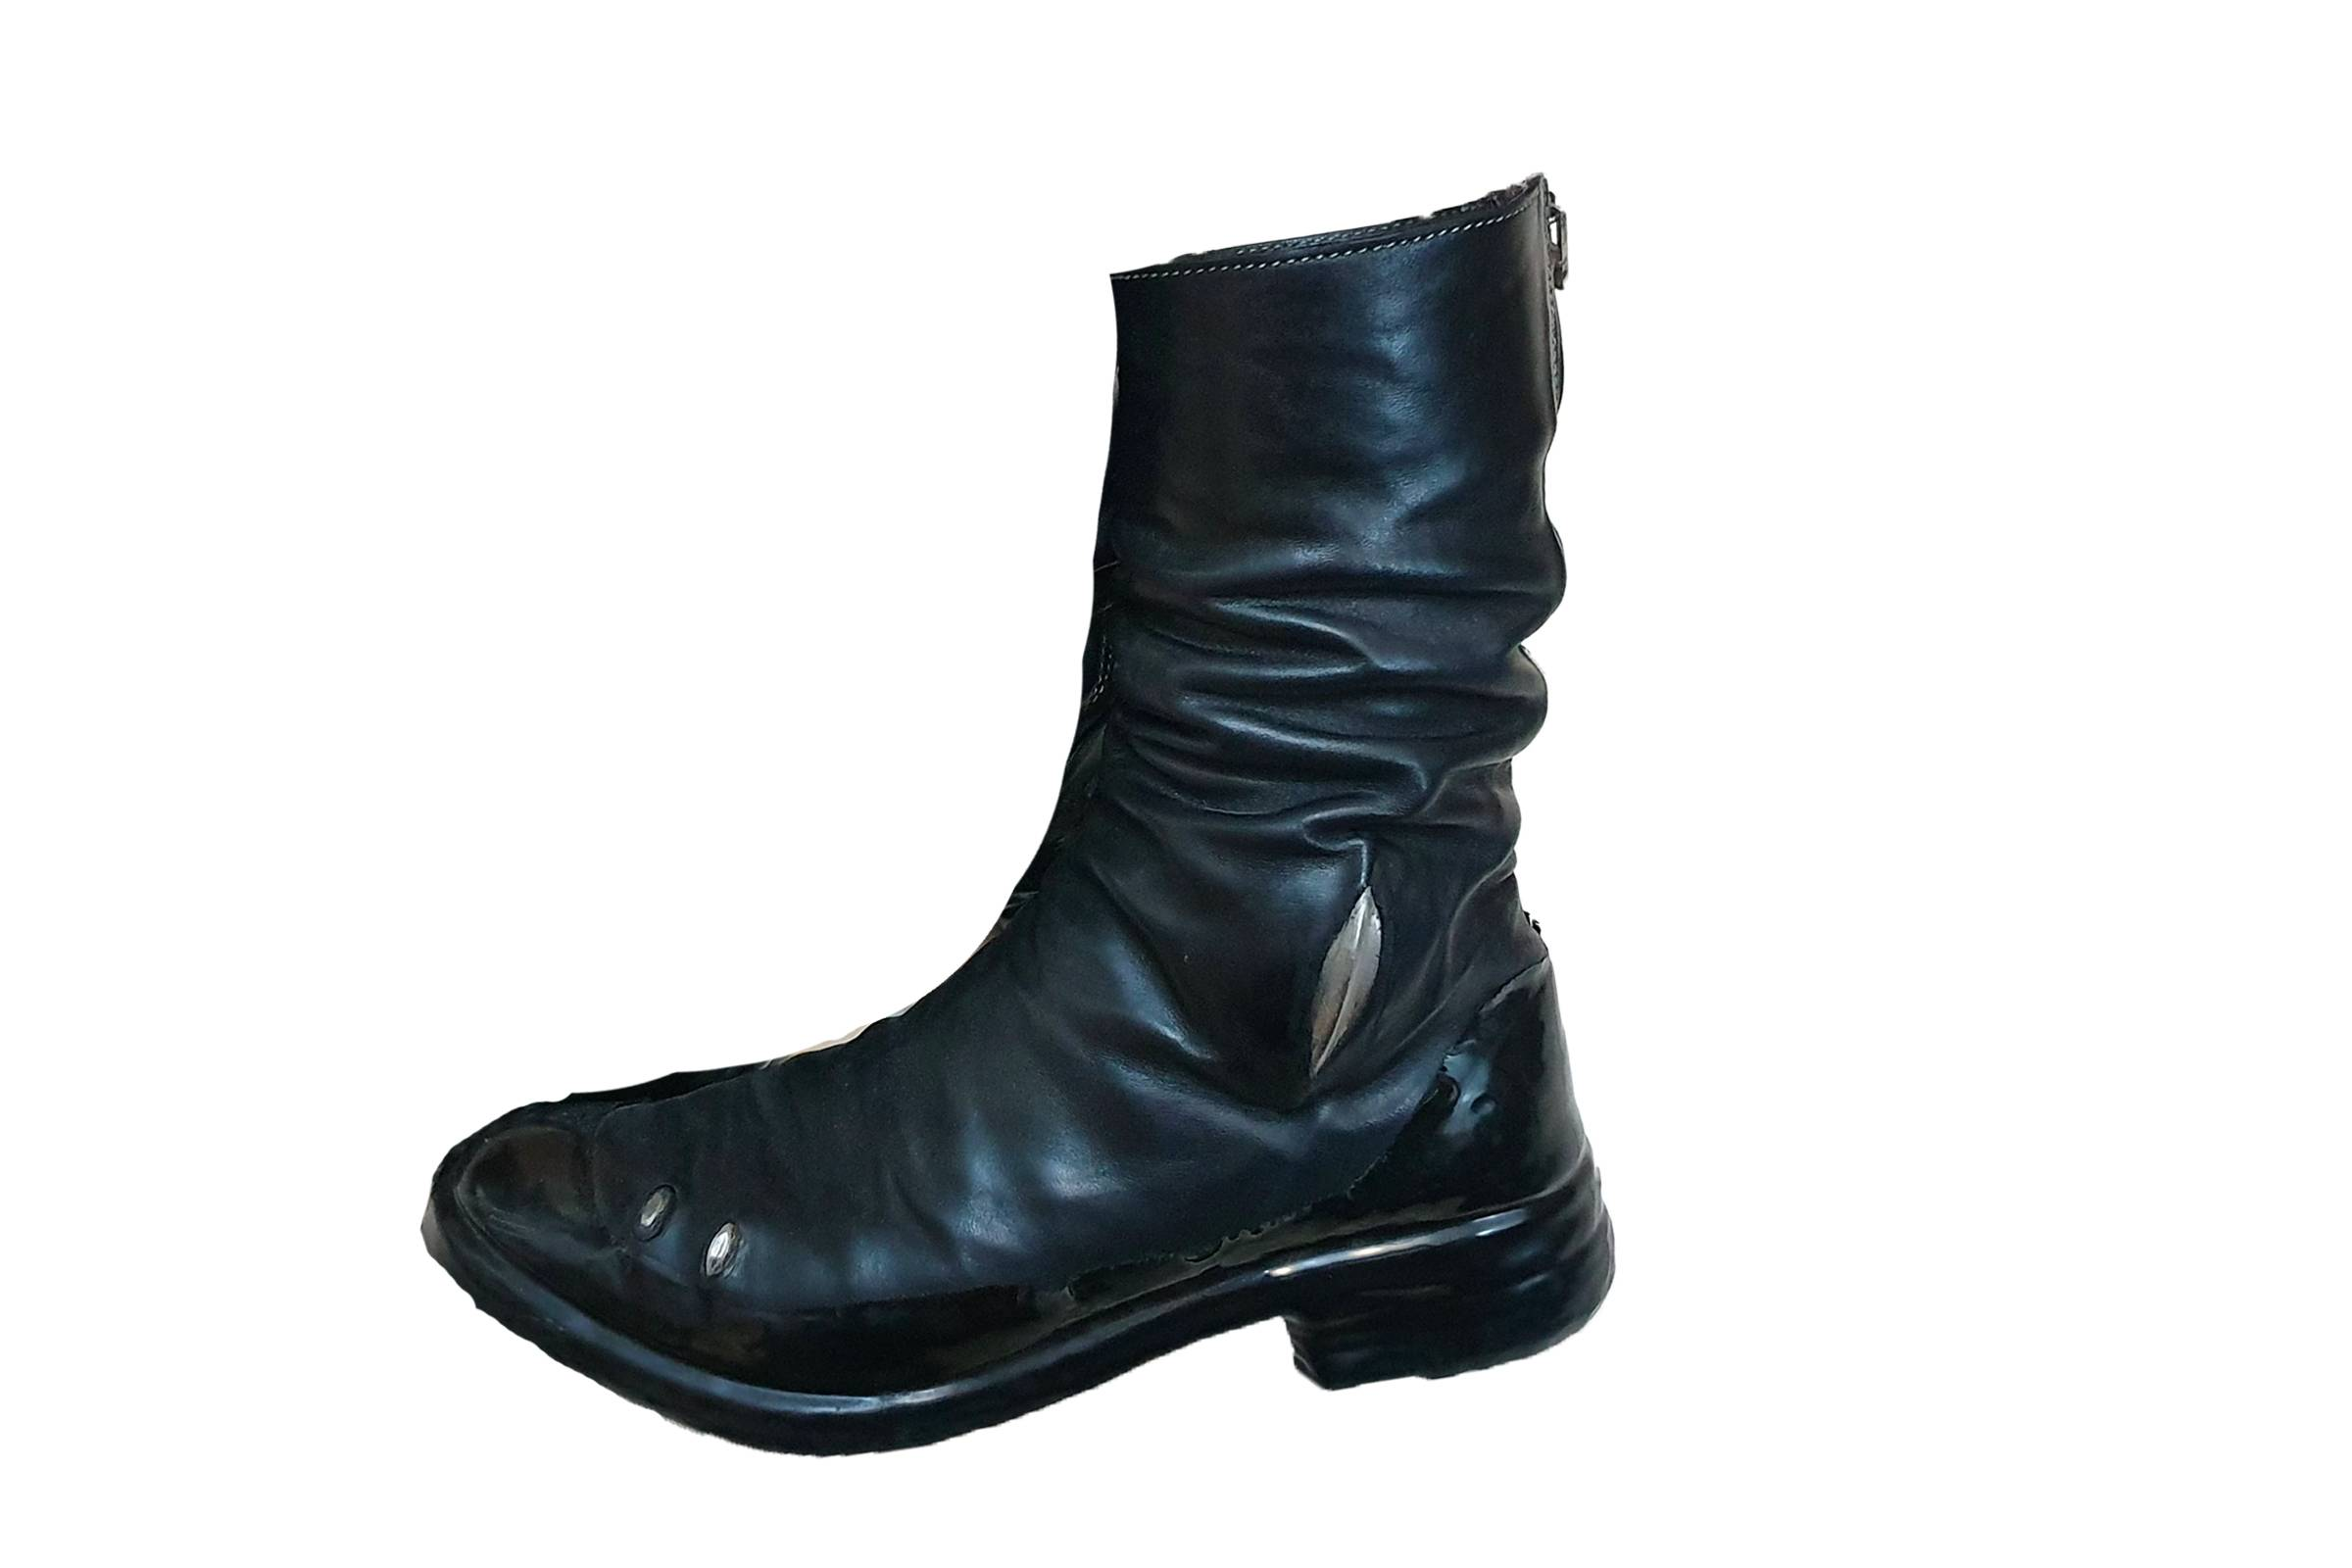 Carol Christian Poell Prosthetic Dripped Diagonal Zip Boots